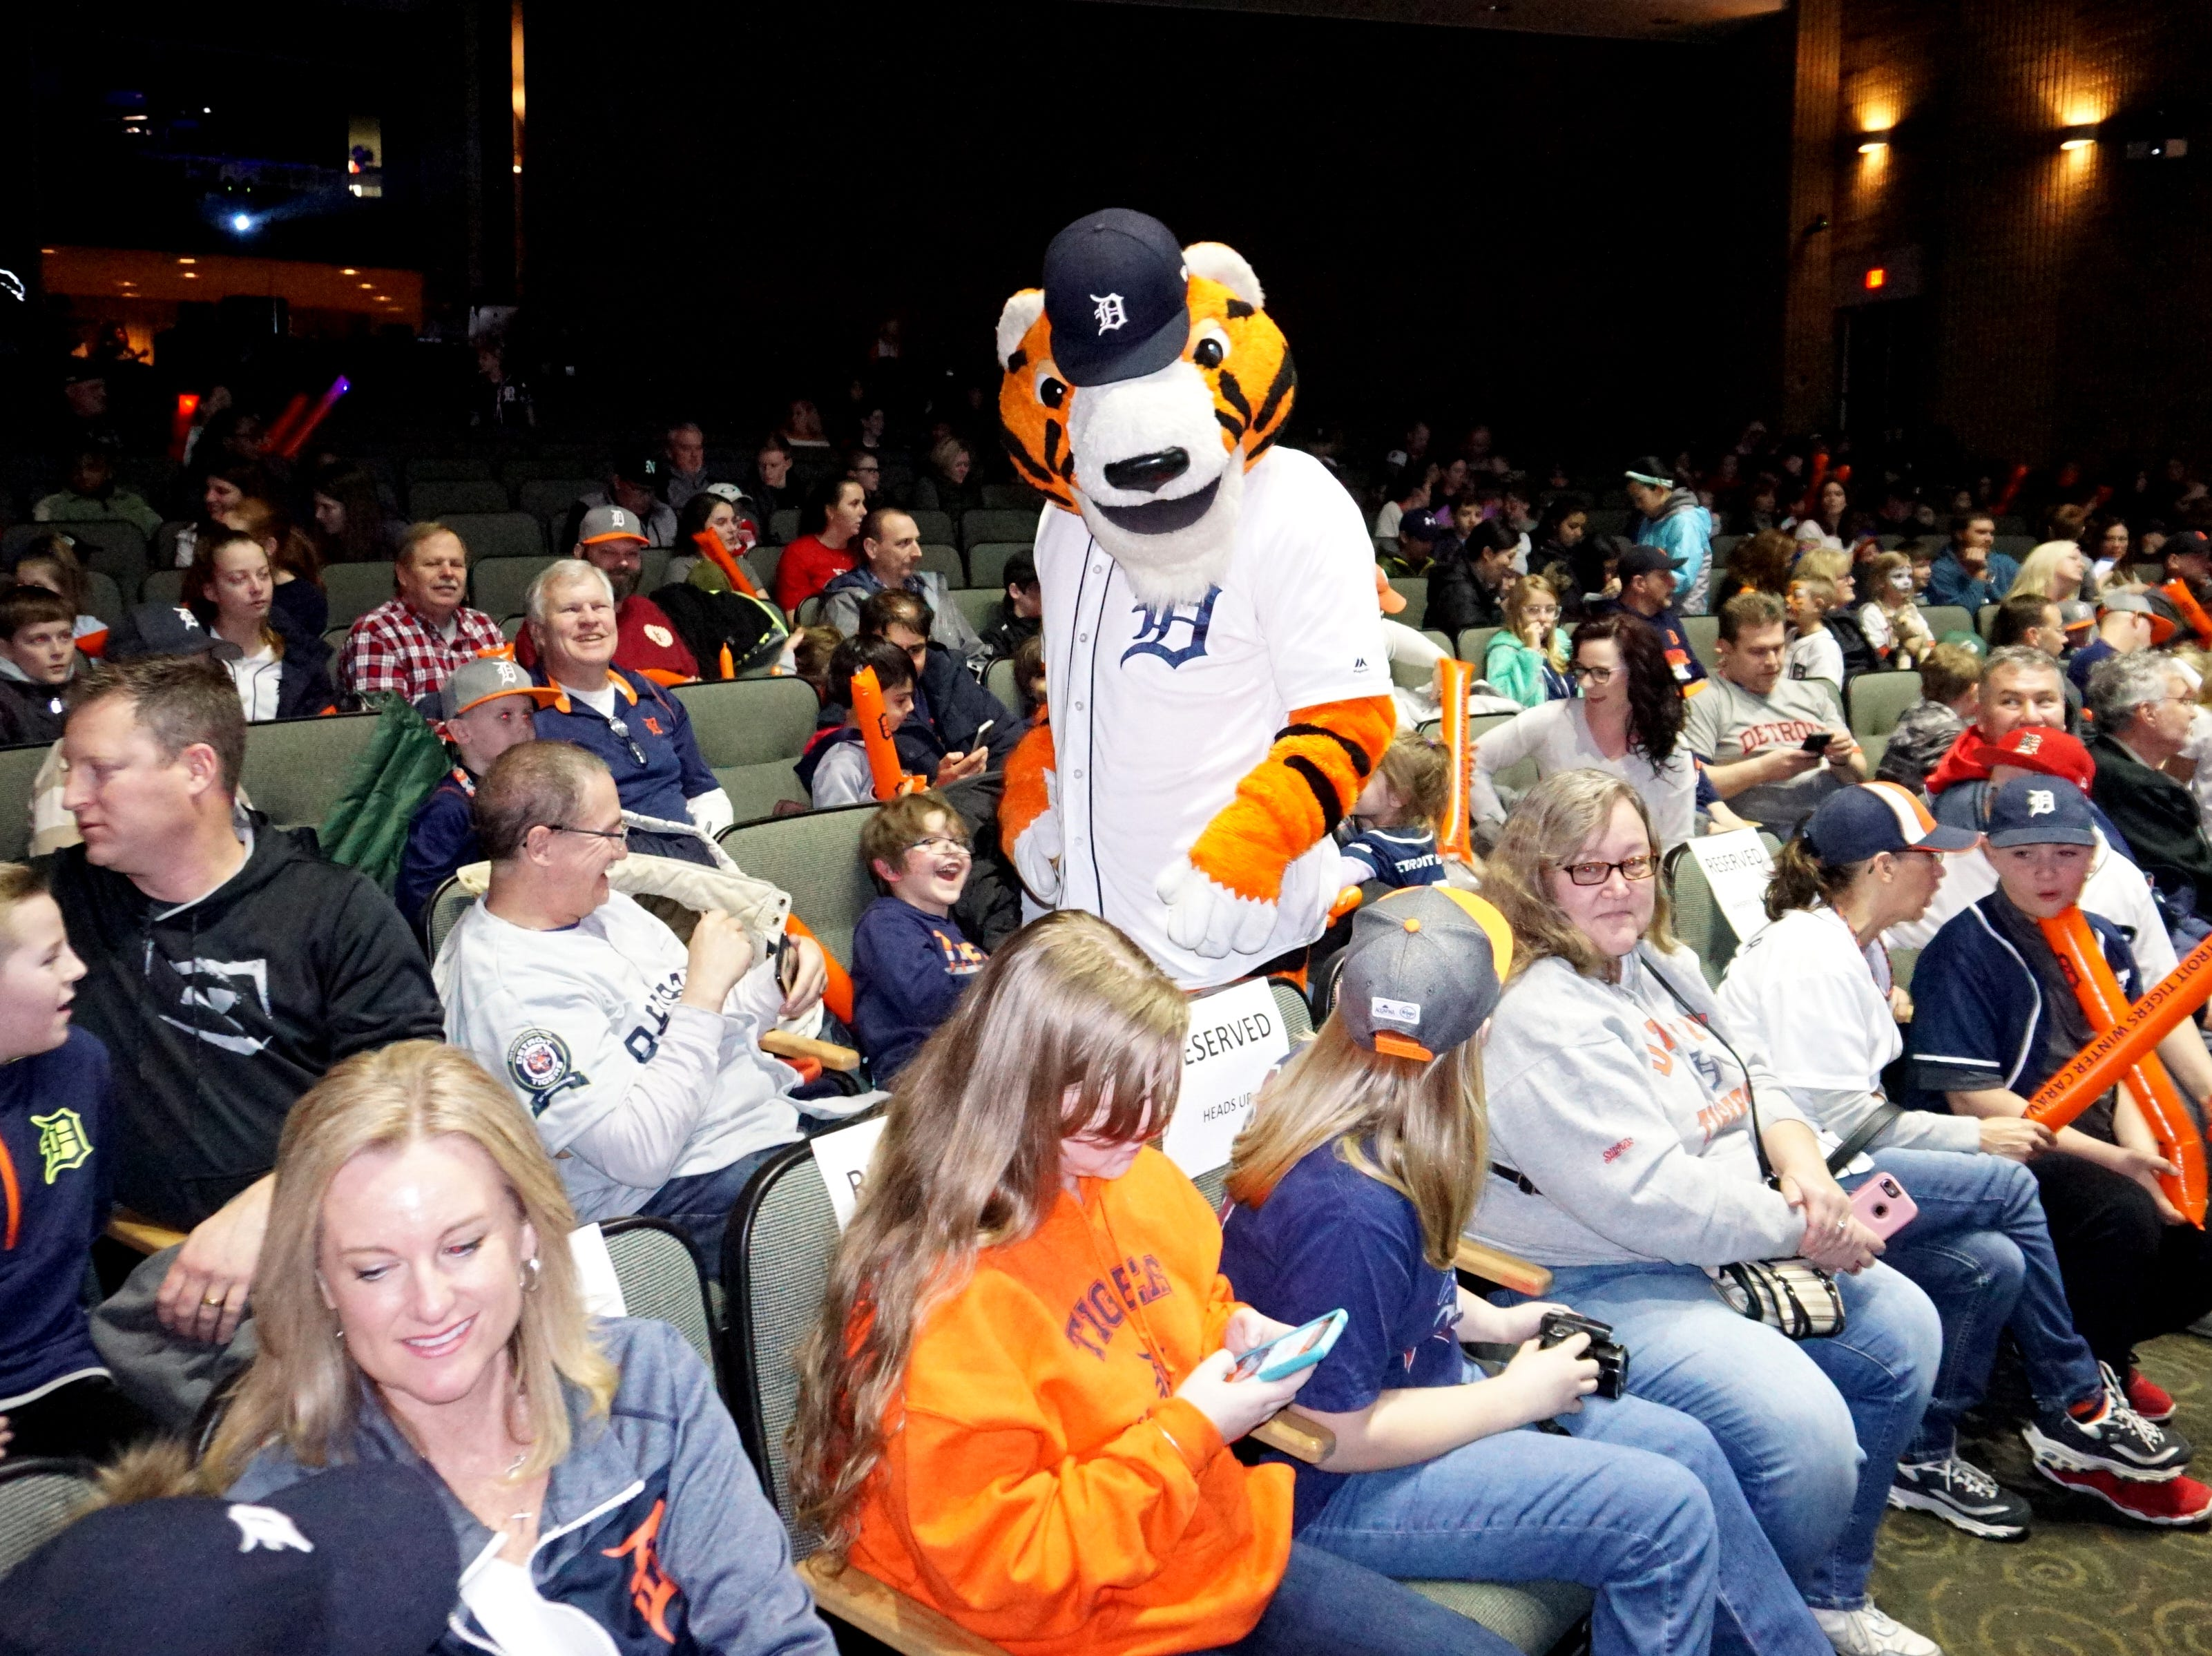 Paws prowls the aisles of Novi High's auditorium on Thursday before the Tigers visited for another meeting with their fans in town.